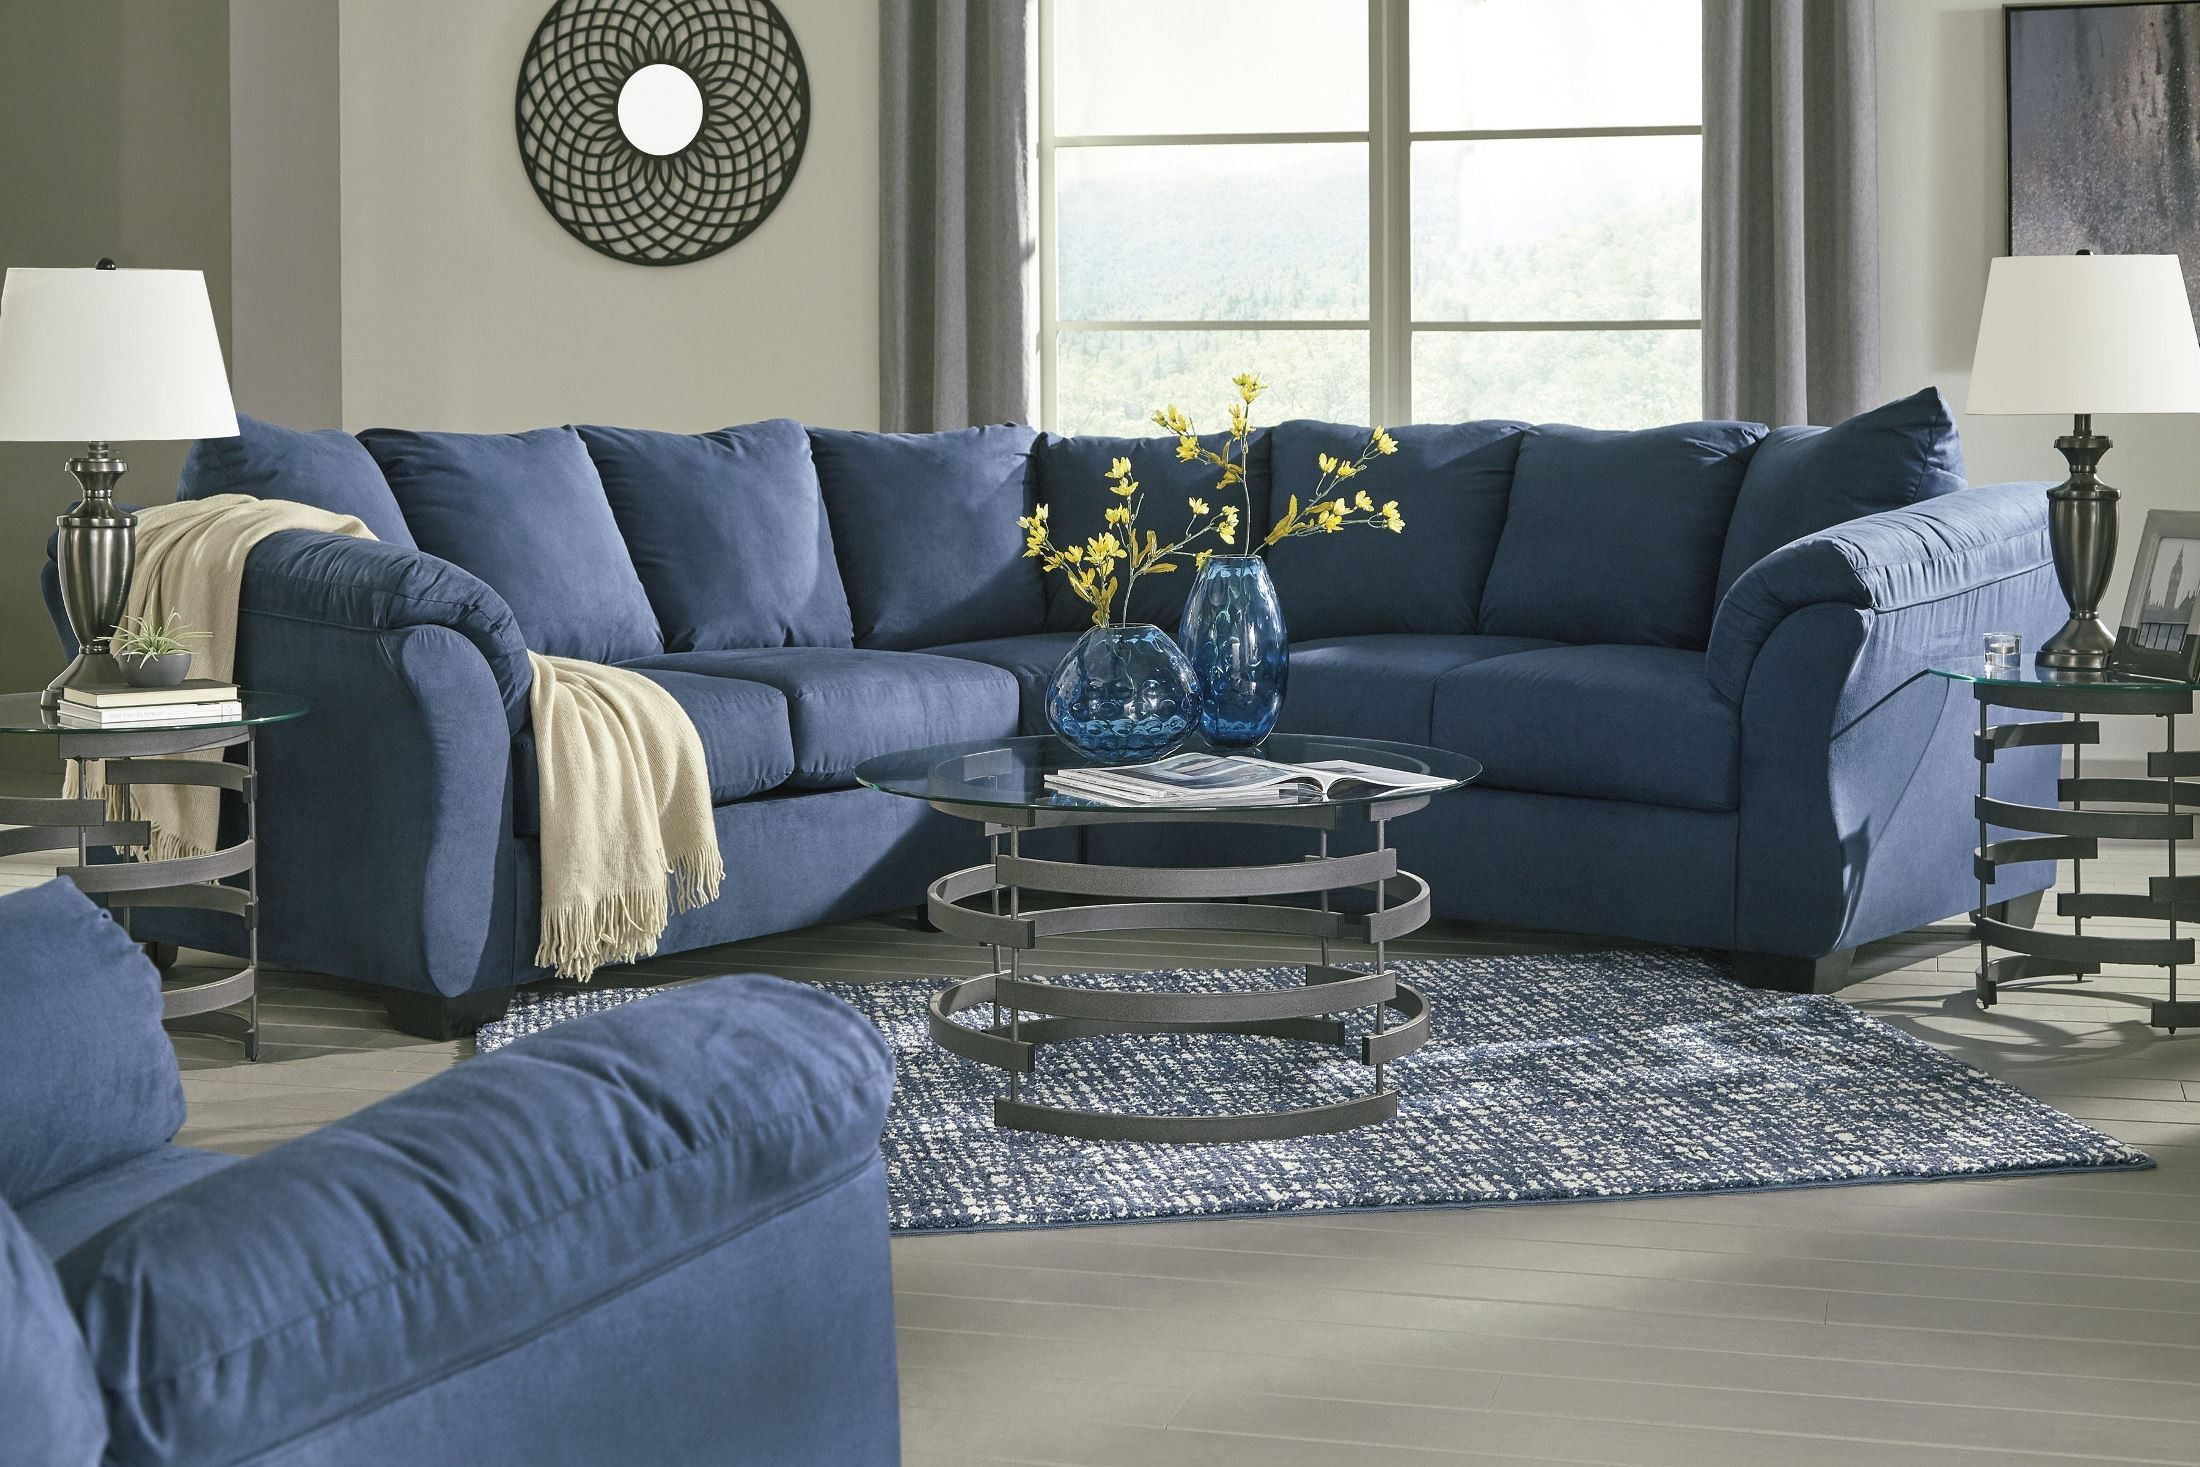 royal concept full of and awesome or storage with ikea photos sears blue chaise sectional storageblue also sofa sleeper cubix size